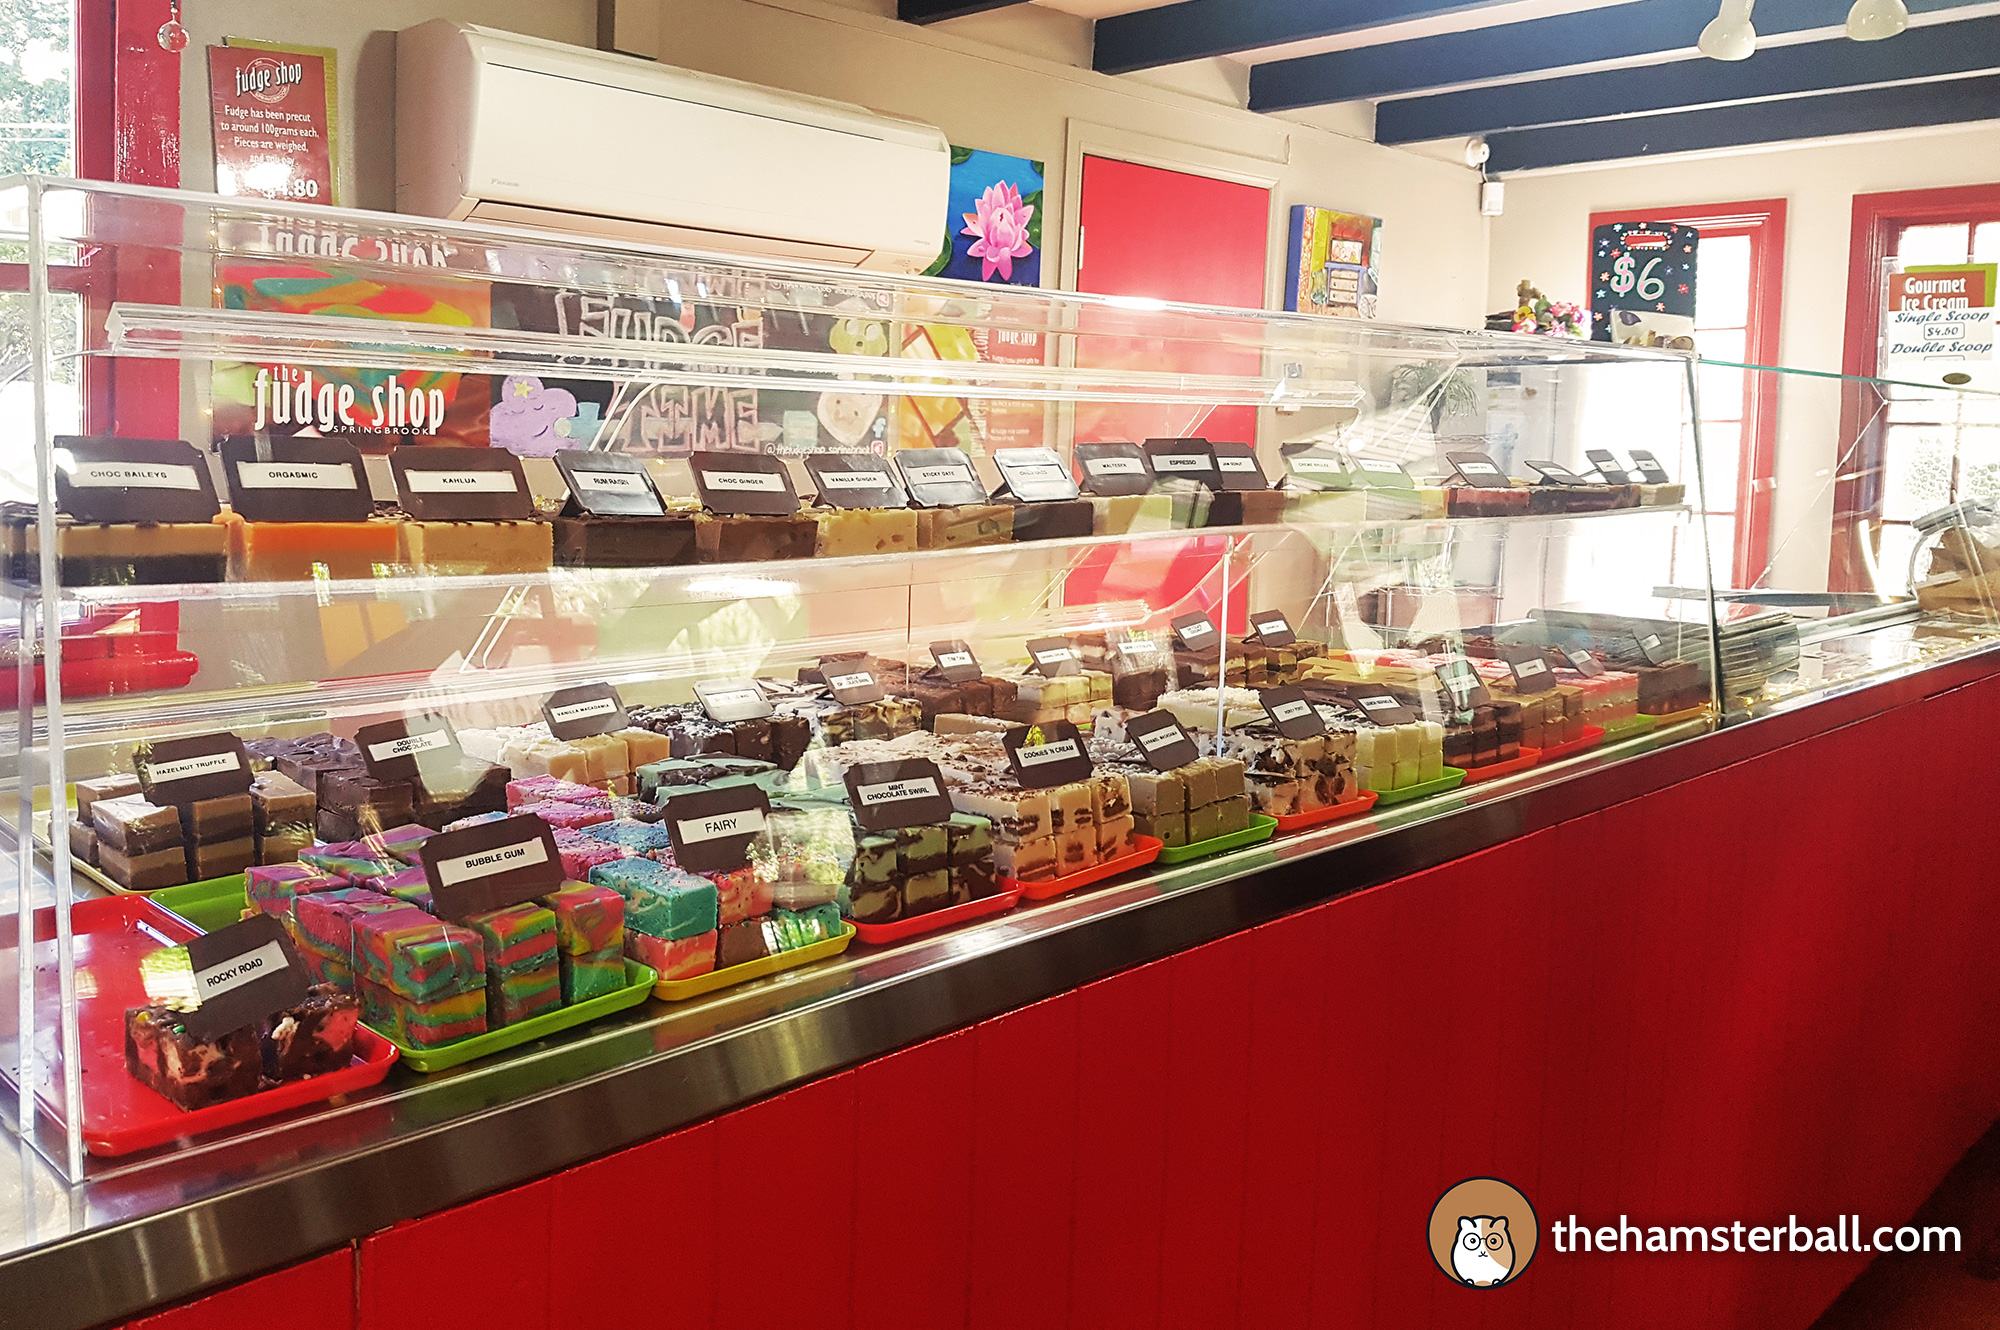 The Fudge Shop, Springbrook, Sweet, sugar, dessert, colorful, flavors